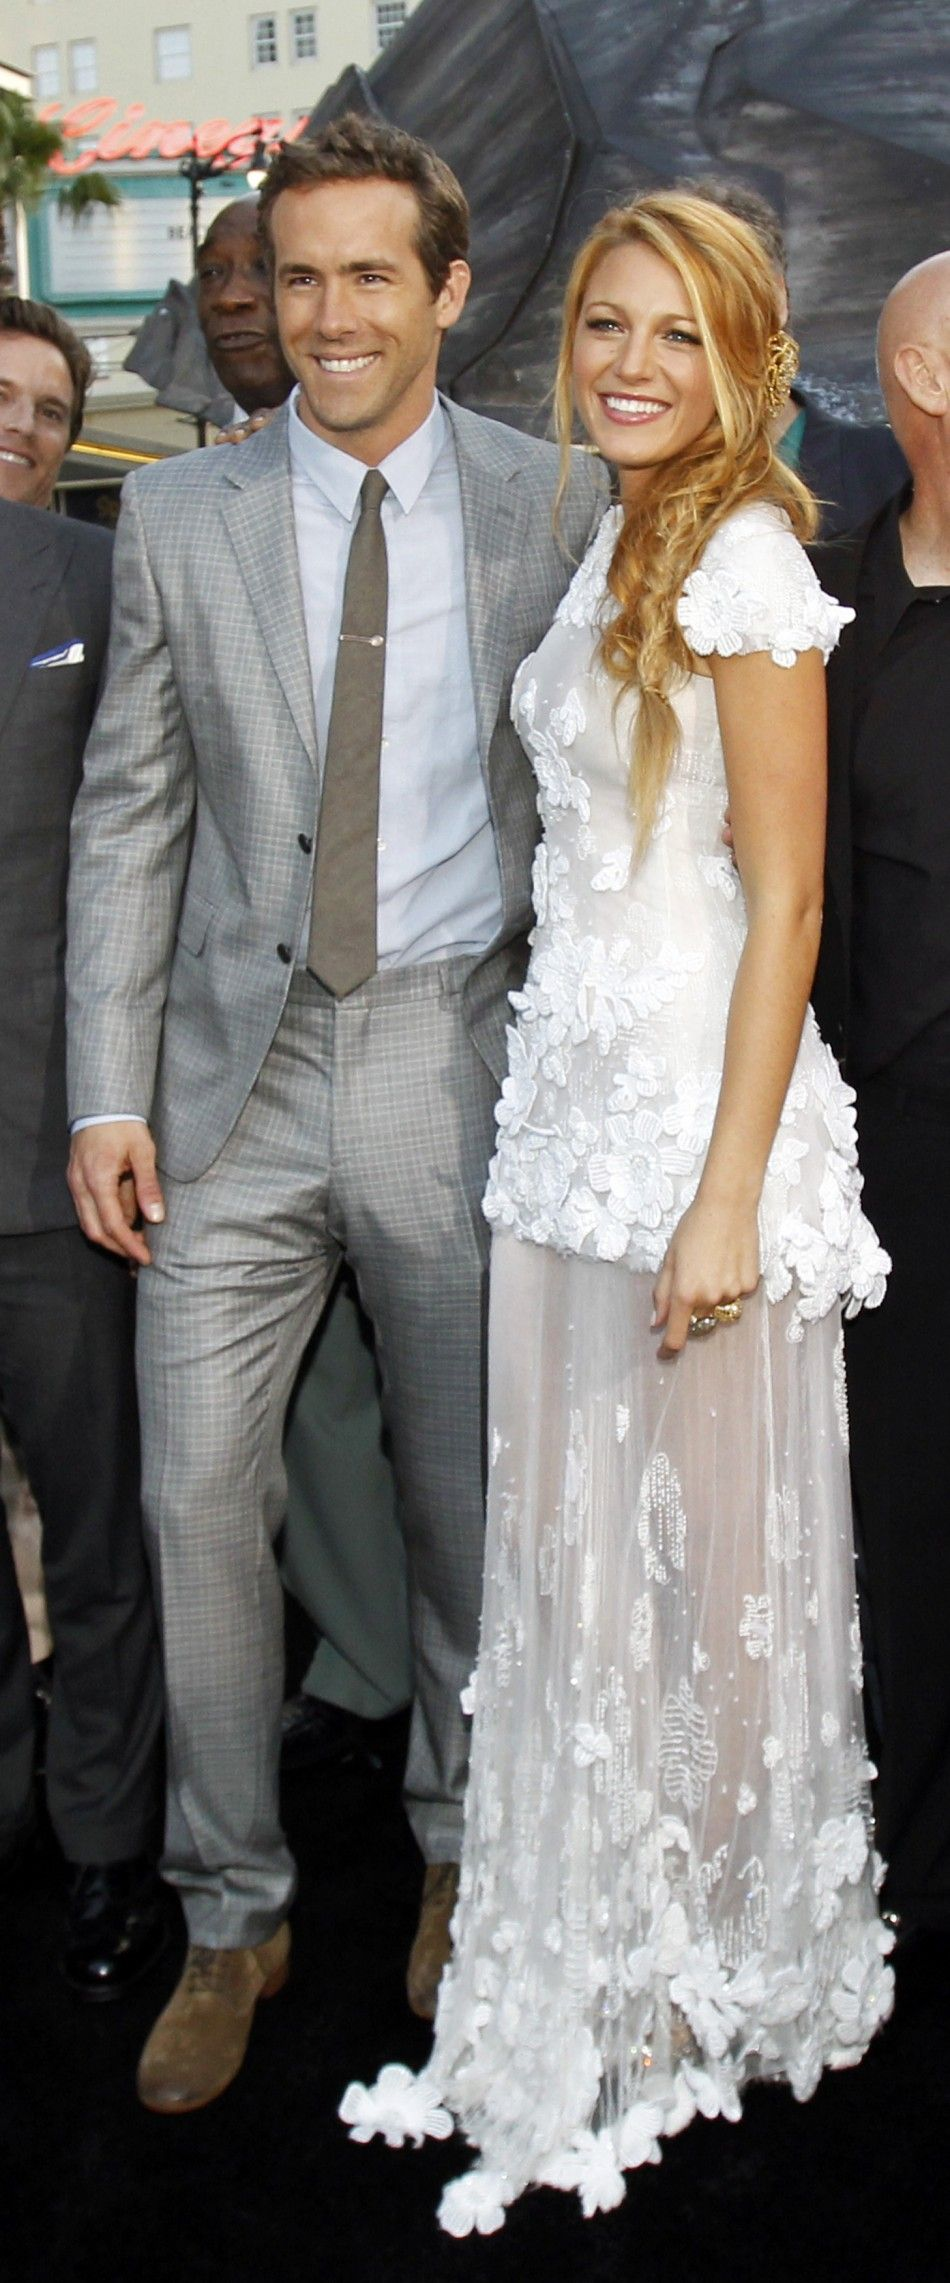 Blake and Ryan- congrats on your marriage! Hottest couple alert ...